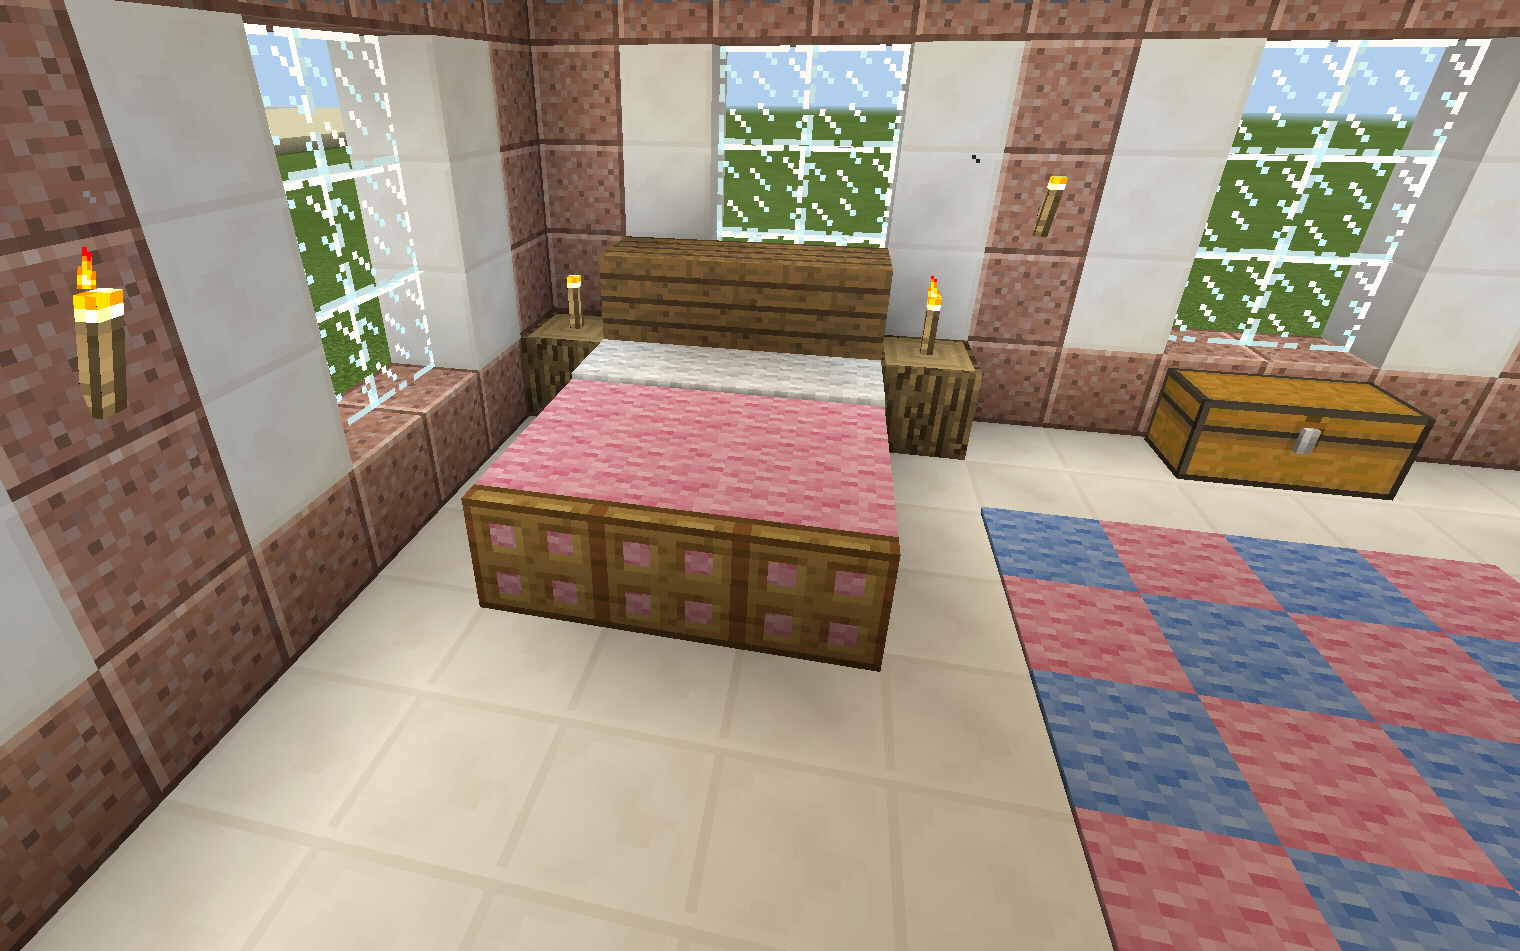 minecraft pink bed bedroom minecraft minecraft minecraft ideen und spiele. Black Bedroom Furniture Sets. Home Design Ideas